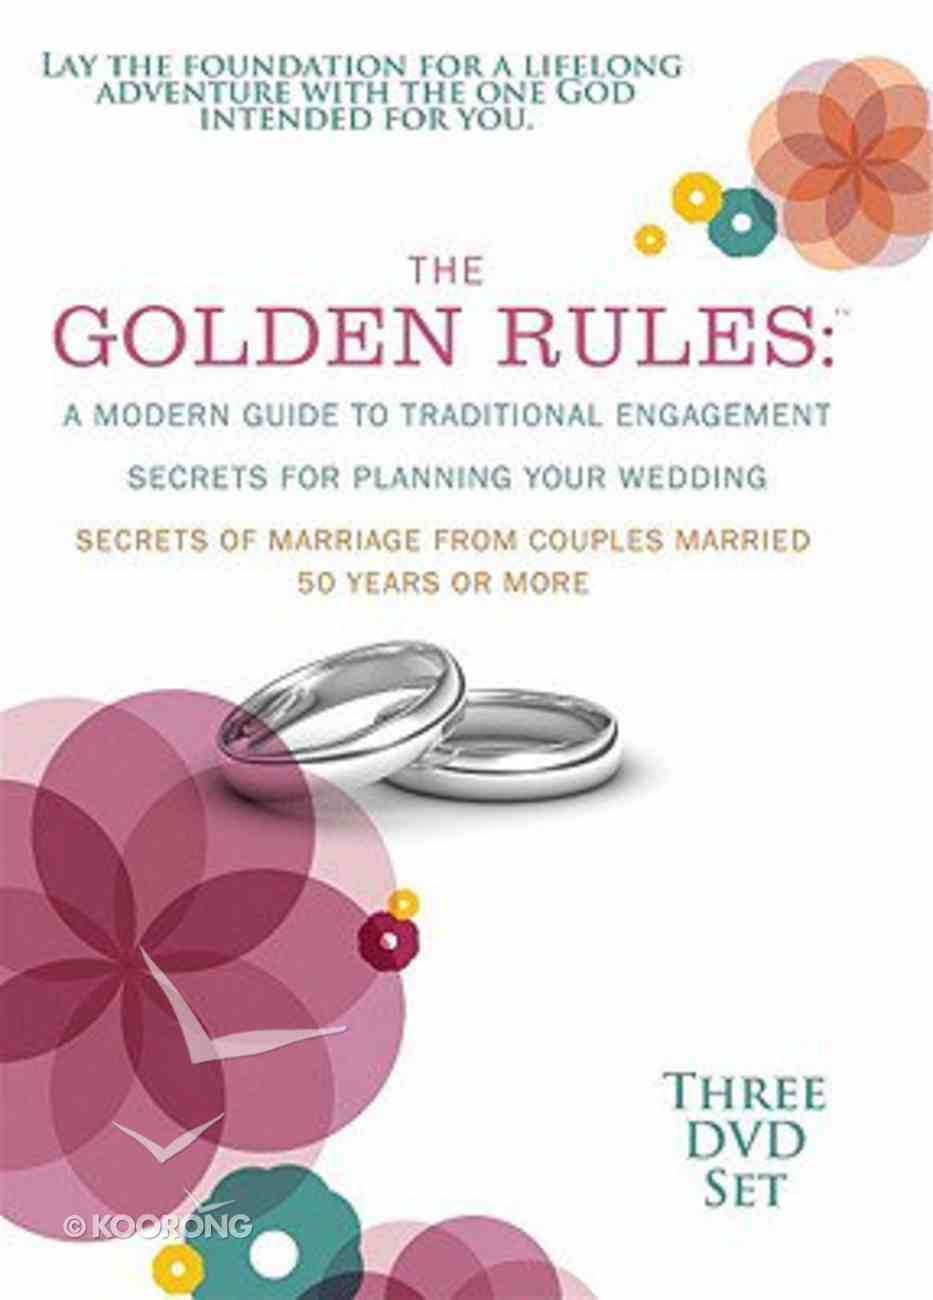 The Golden Rules (Boxed Set) DVD